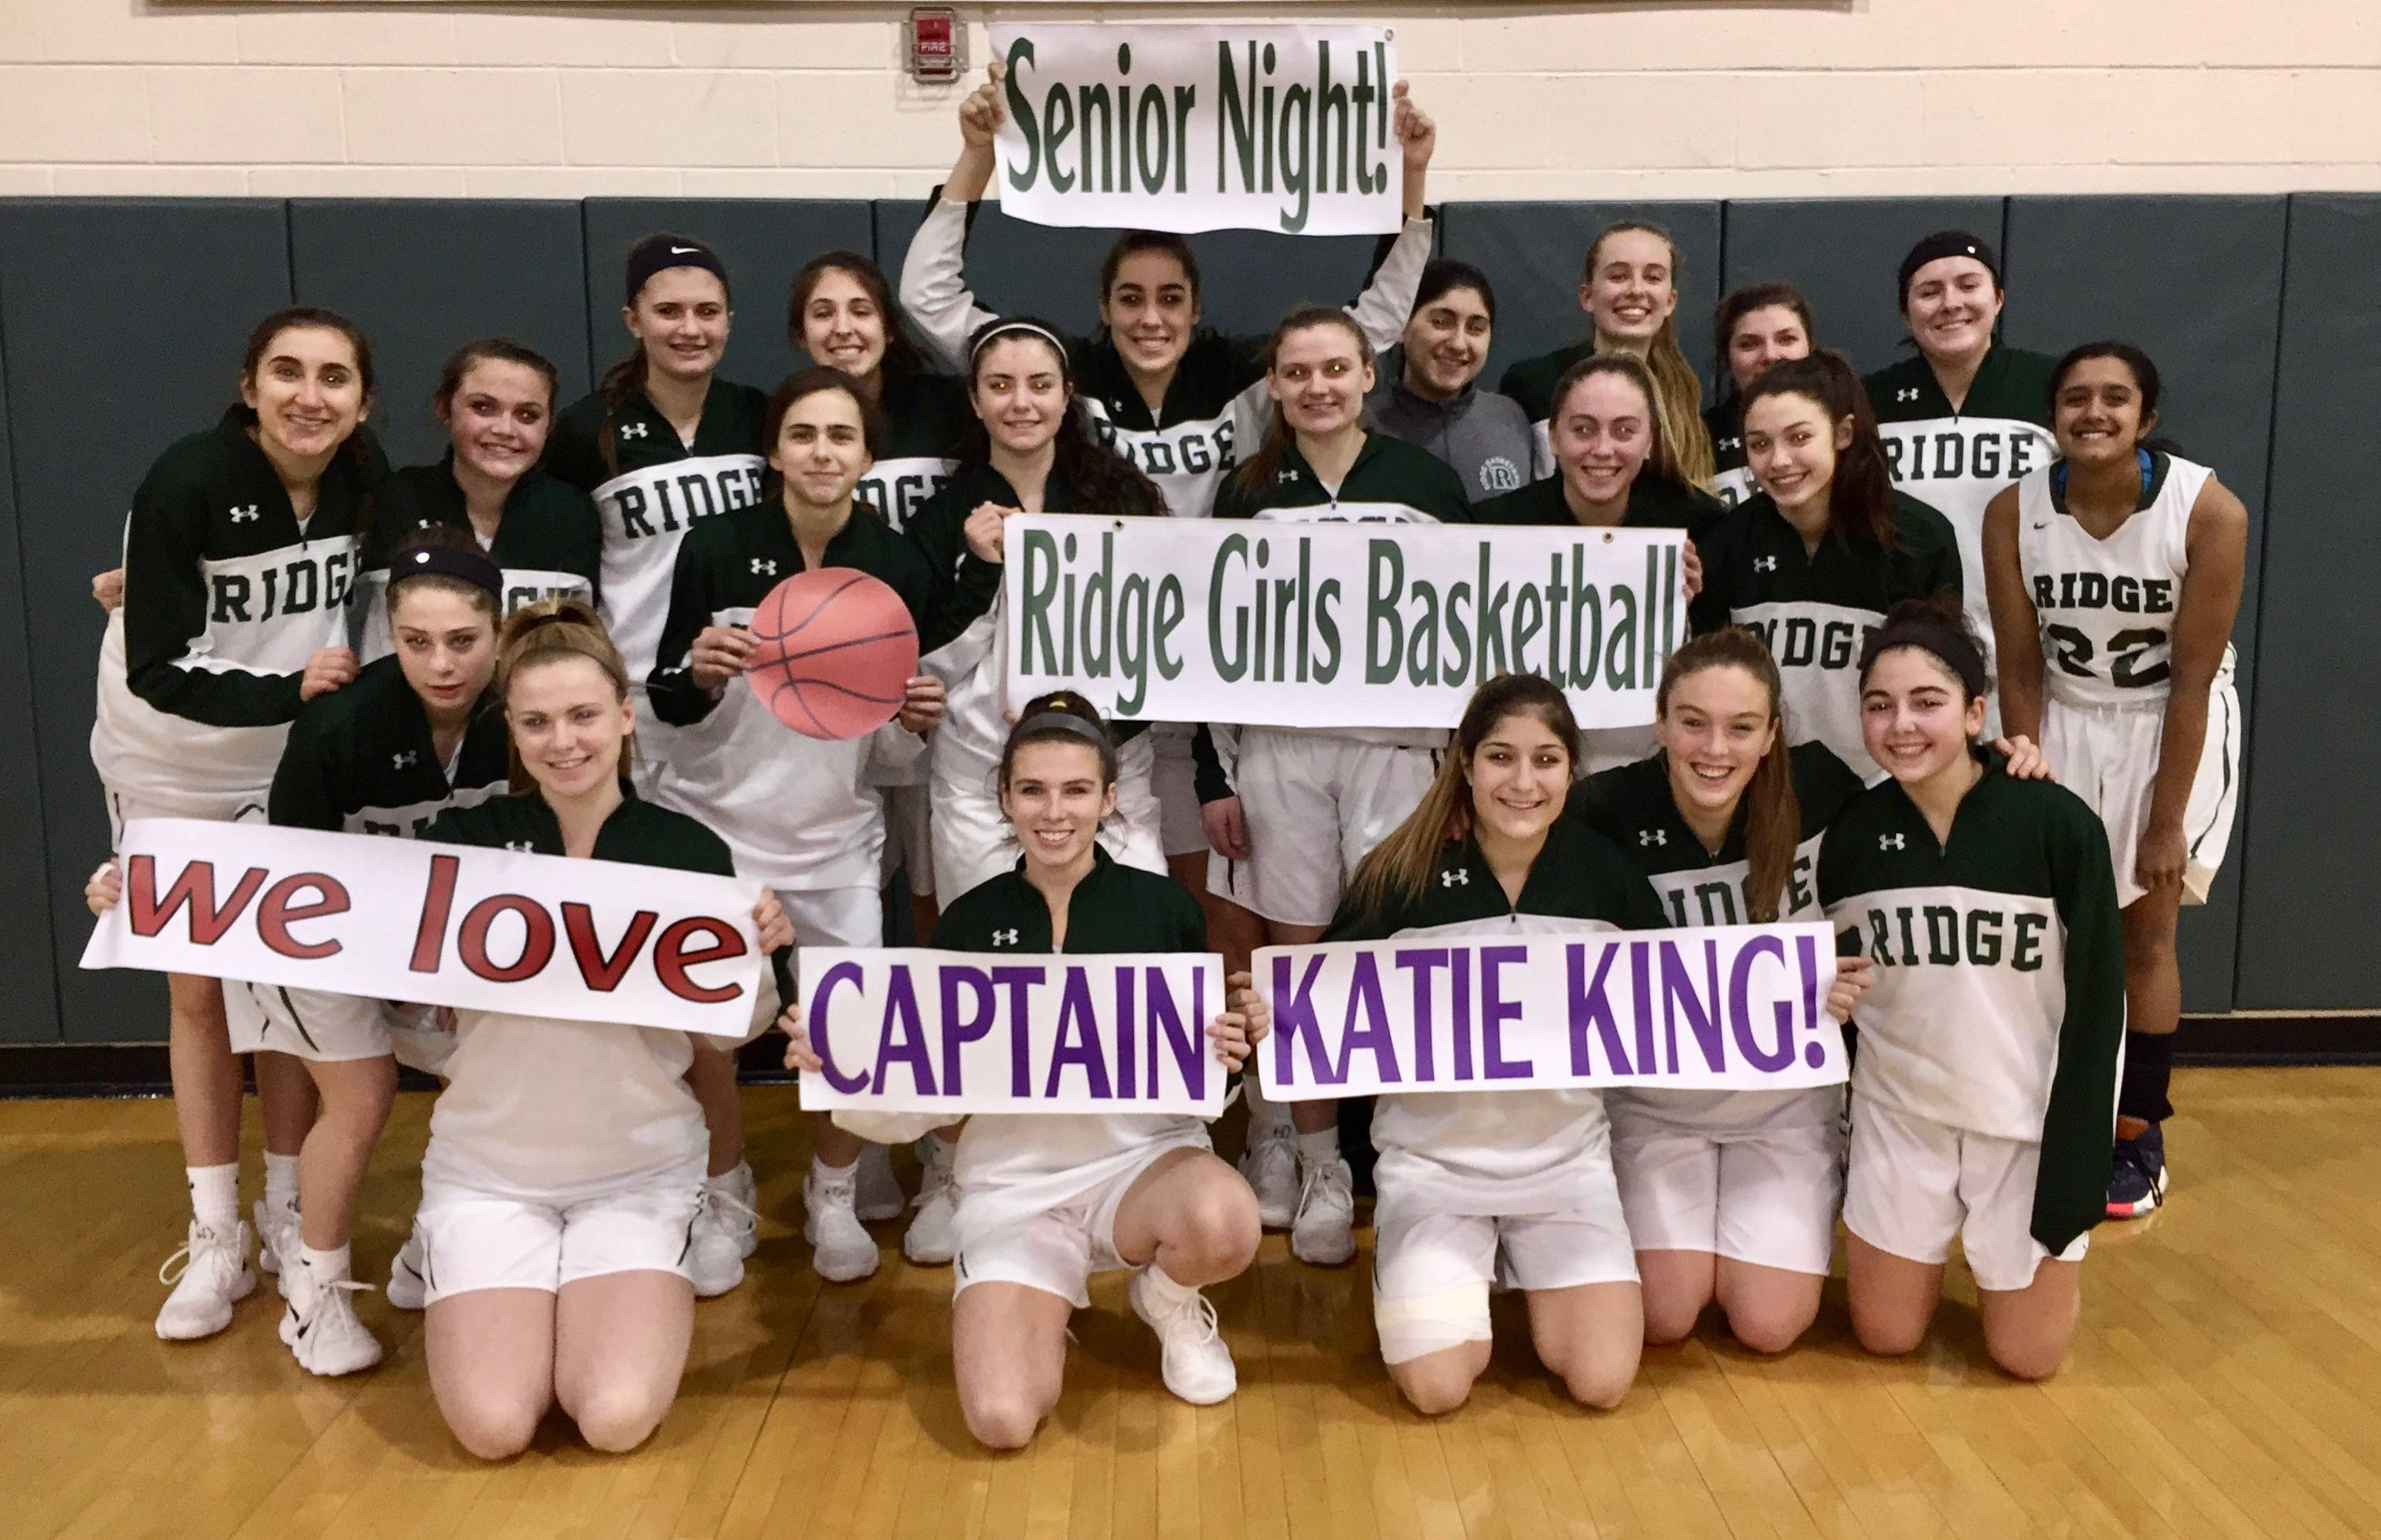 daa894a9ad249598cc1a_Ridge_girls_basketball_honor_Katie_King.jpg